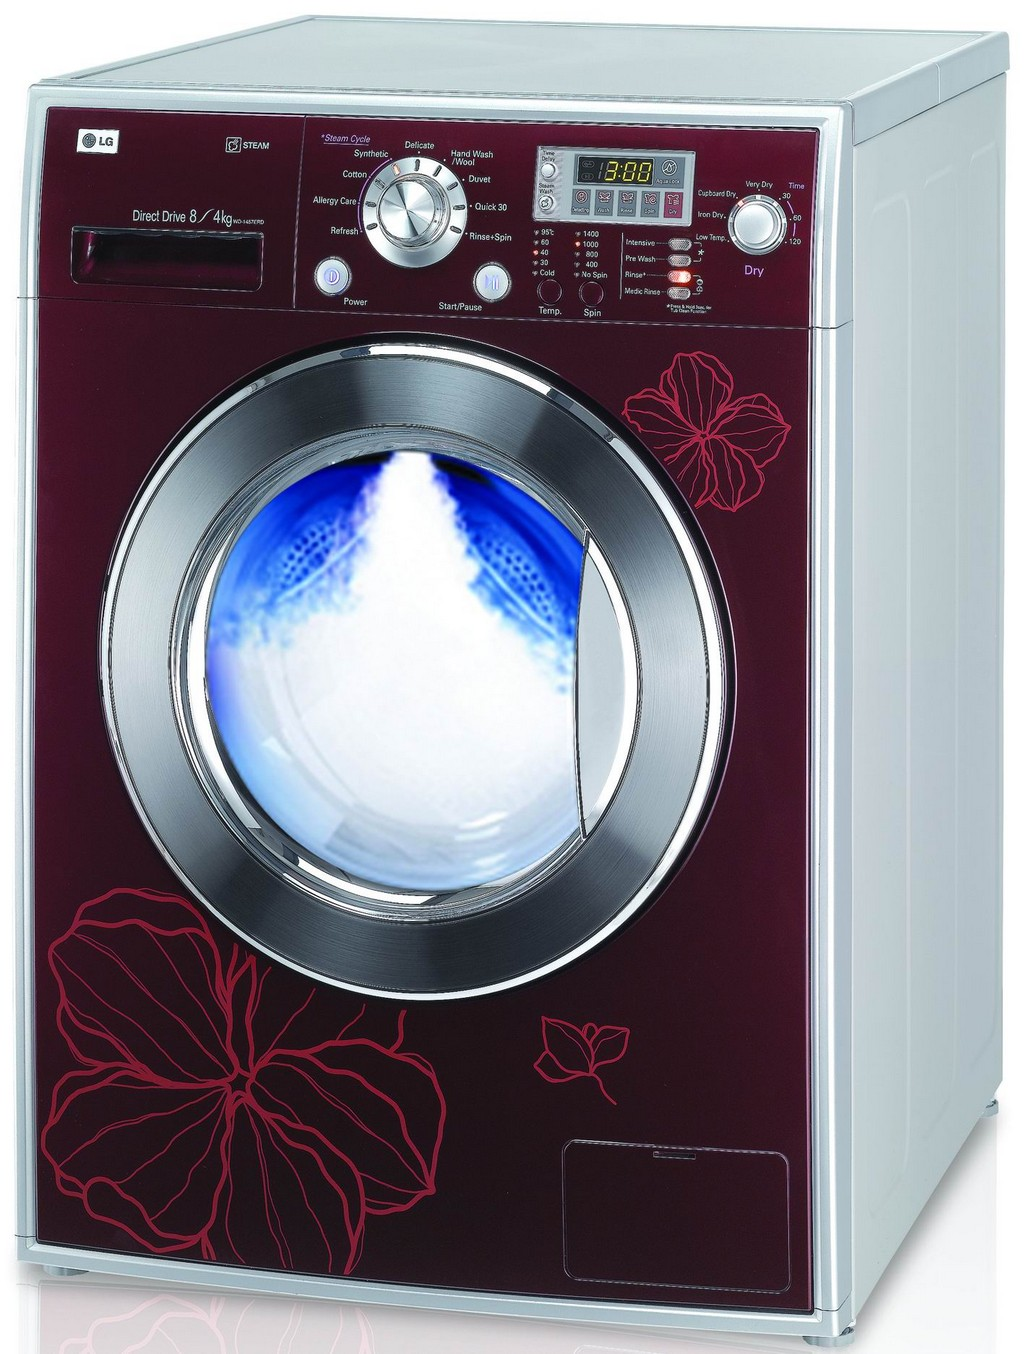 used washing machine, steam washing machine, washing machine